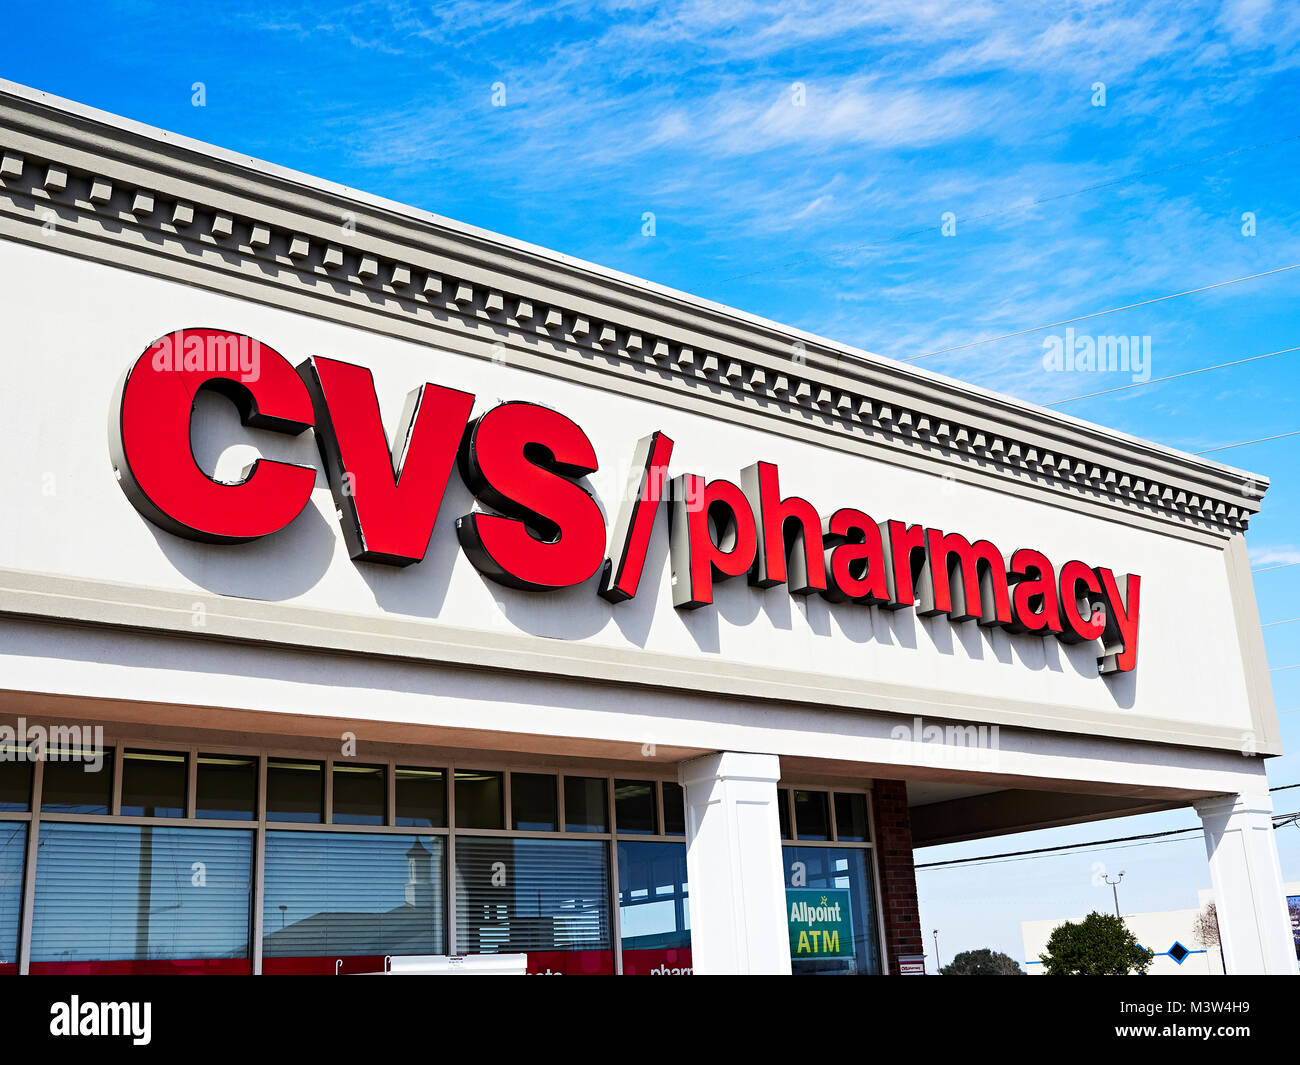 CVS Pharmacy, or drug store chemist, sign or signage on the front exterior of the building in Montgomery Alabama, - Stock Image